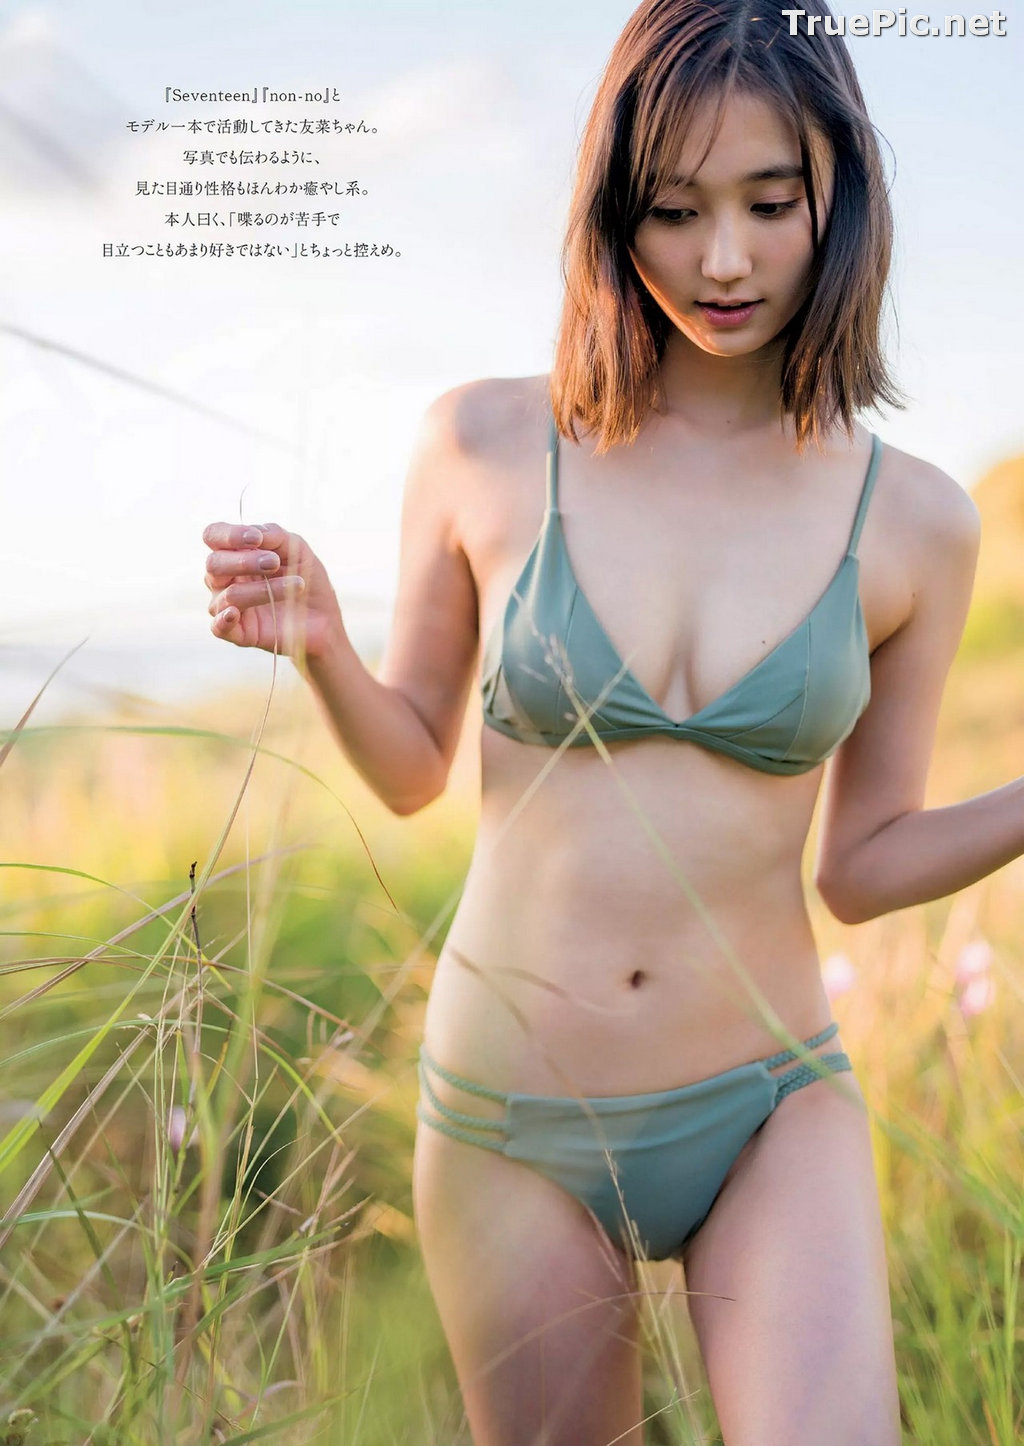 Image Japanese Model and Actress - Yuuna Suzuki - Sexy Picture Collection 2020 - TruePic.net - Picture-2